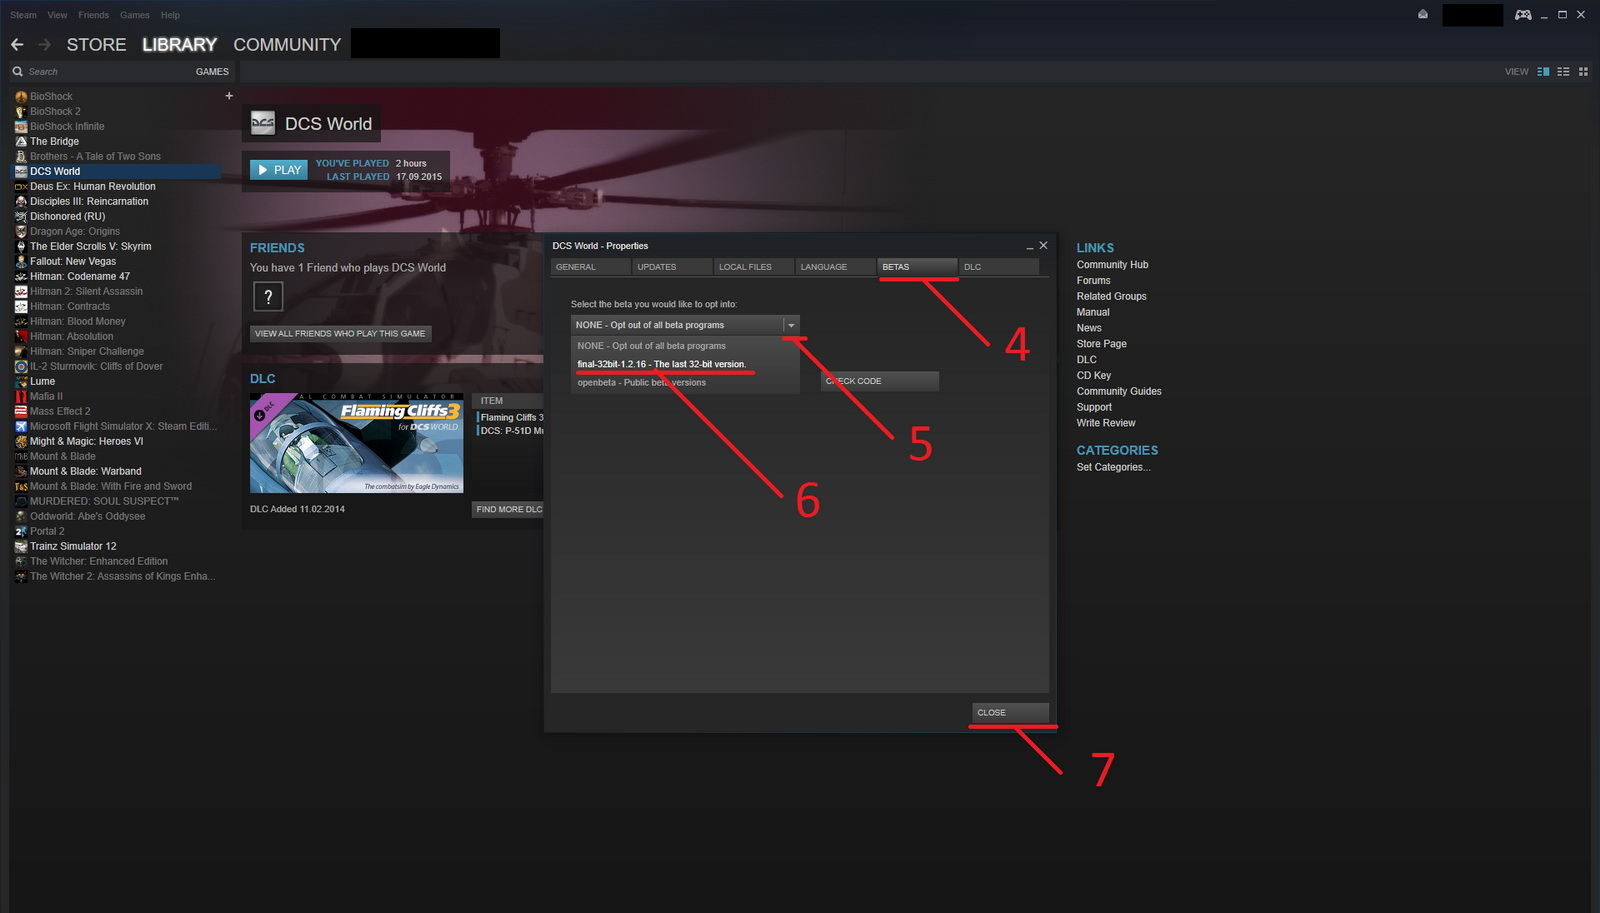 For Steam users with 32-bit OS versions